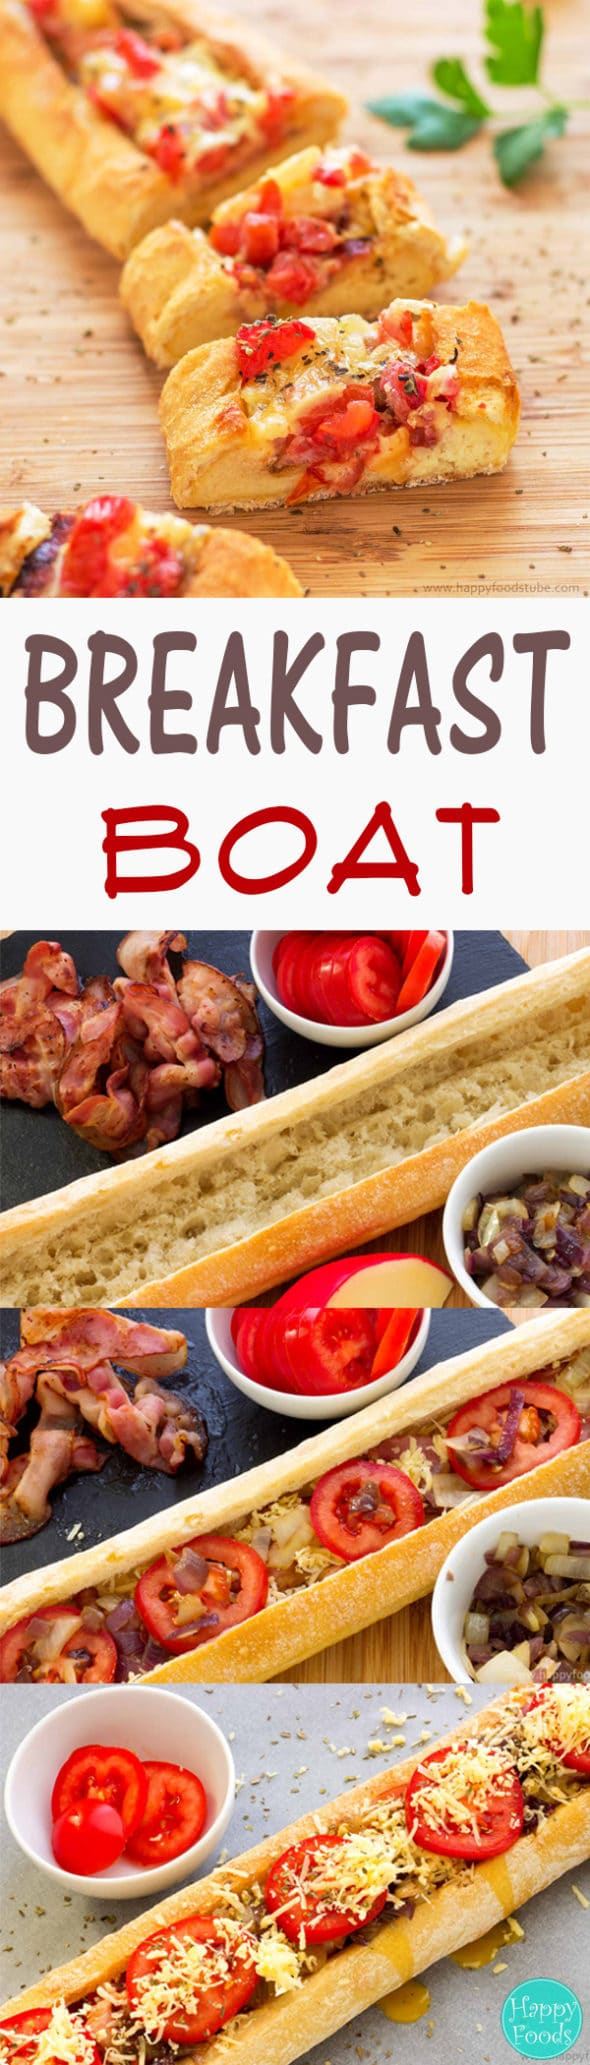 If you can't have breakfast on a boat why don't you have Breakfast Boat instead? Easy peasy and fun way to prepare your breakfast or brunch